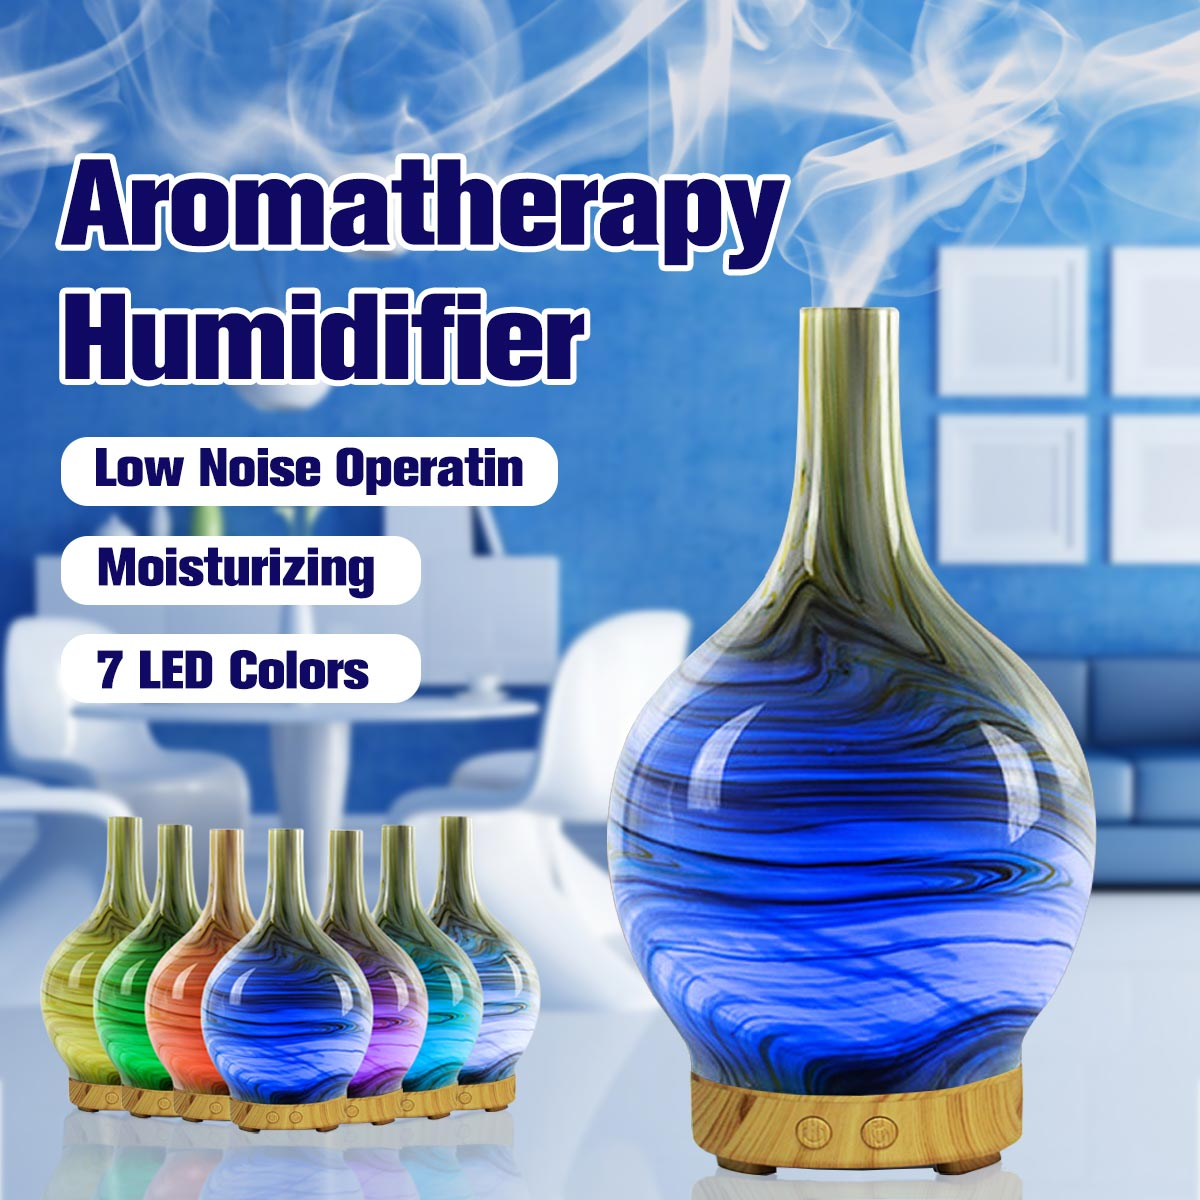 100ml Aromatherapy Humidifier Essential Oil Diffuser Ultrasonic Vase Shape 7 Color LED Light Home Office Living Room Spa Yoga